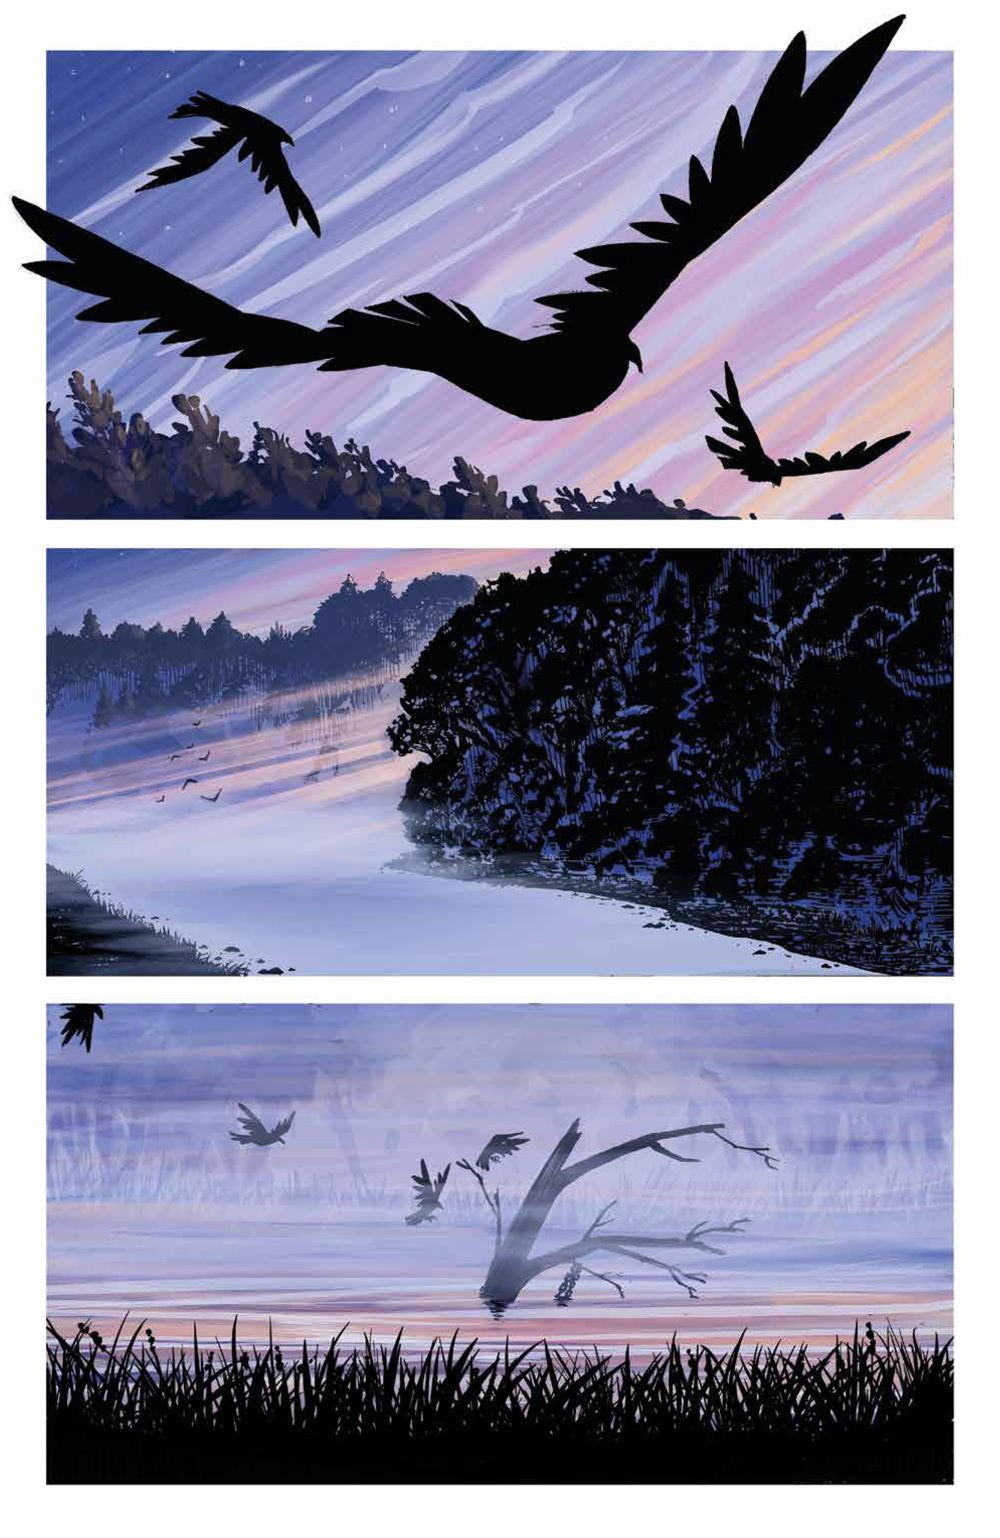 DownRiverPeople_SC_PRESS_10 ComicList Previews: THE DOWN RIVER PEOPLE GN